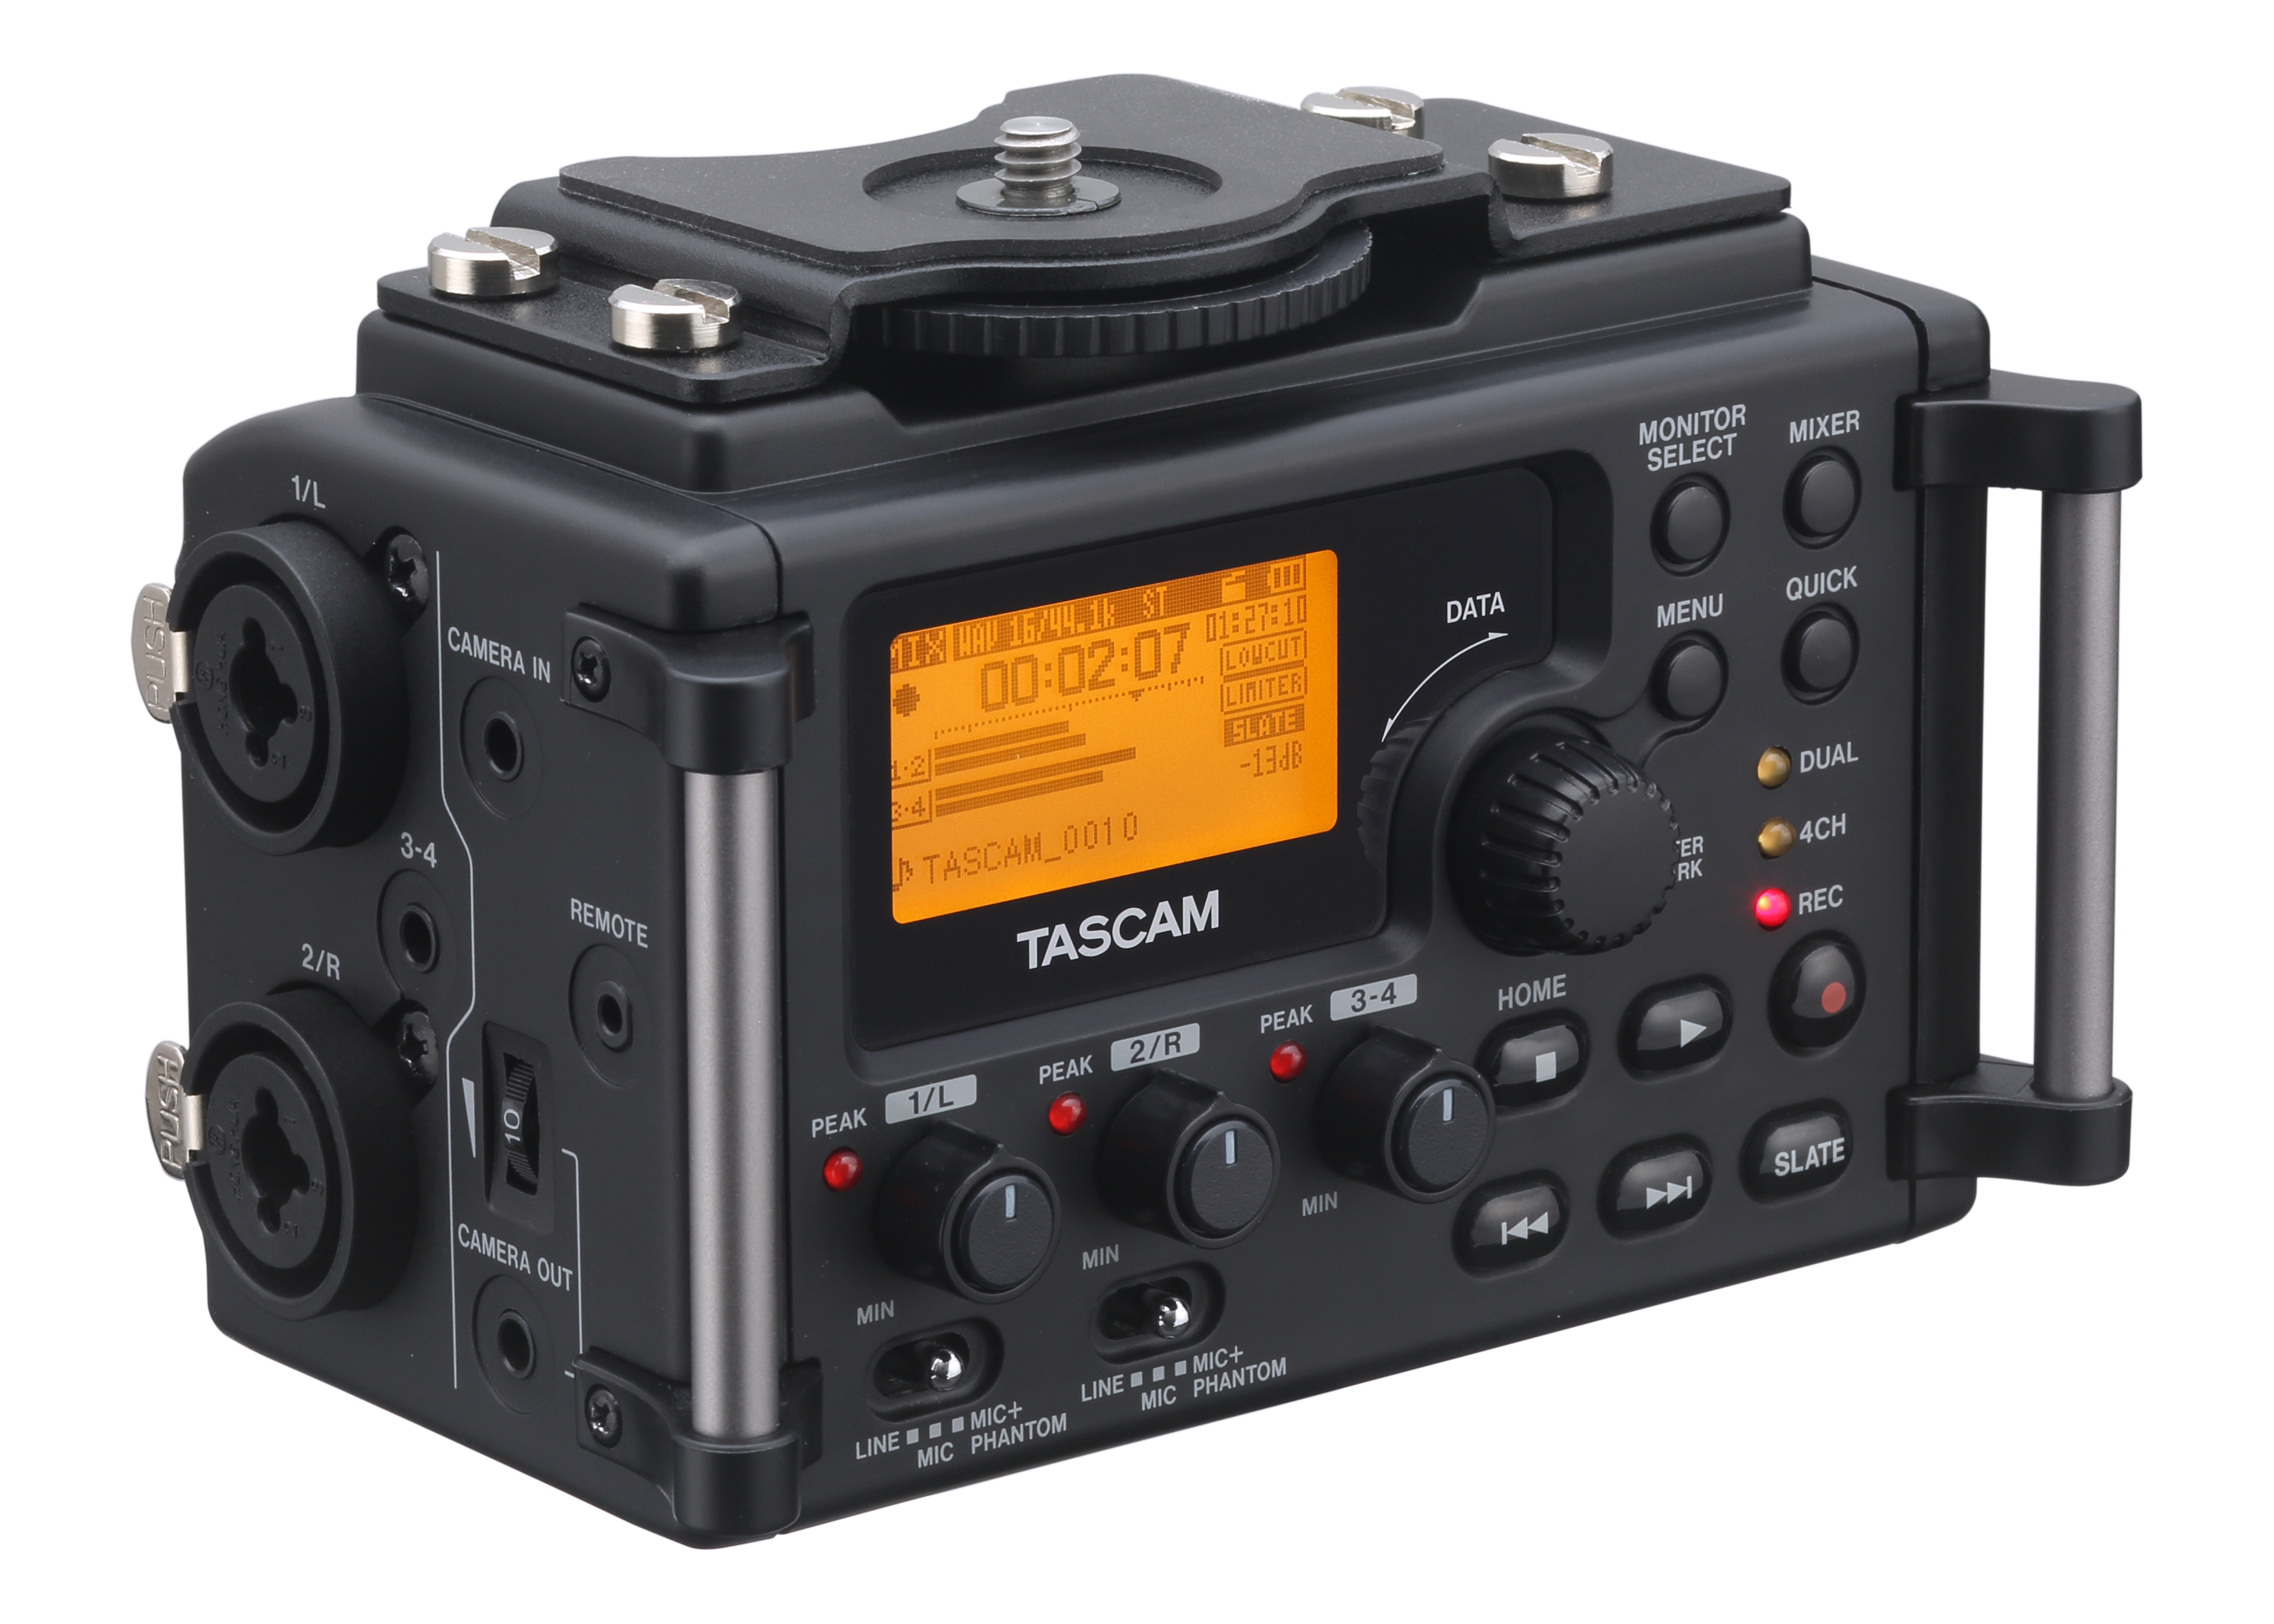 Tascam dr-60d DSLR audio recorder and mixer.